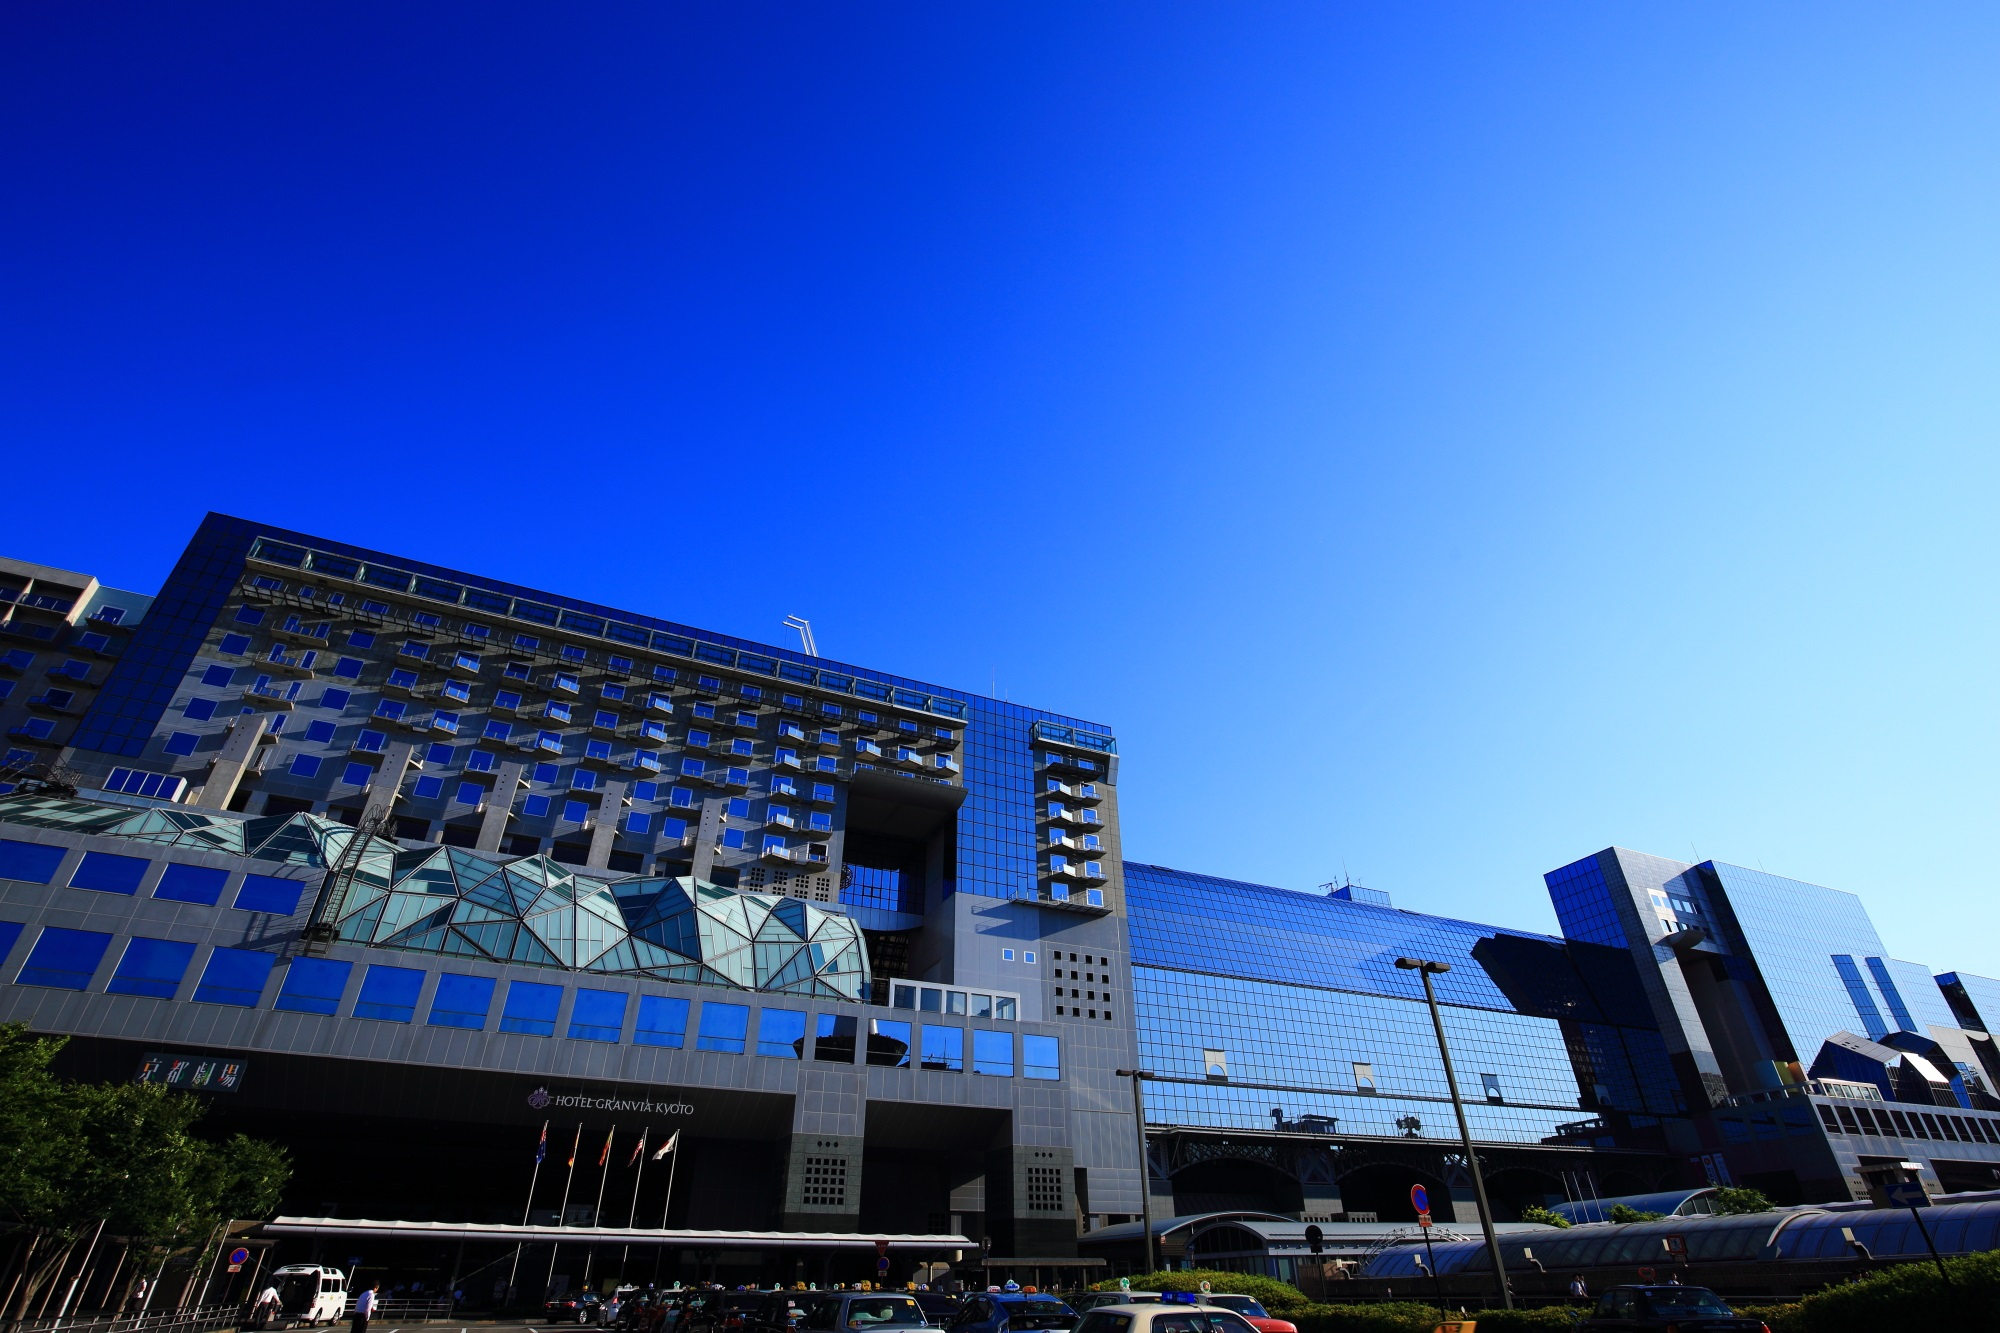 Kyoto Station Building and the blue sky in Japan